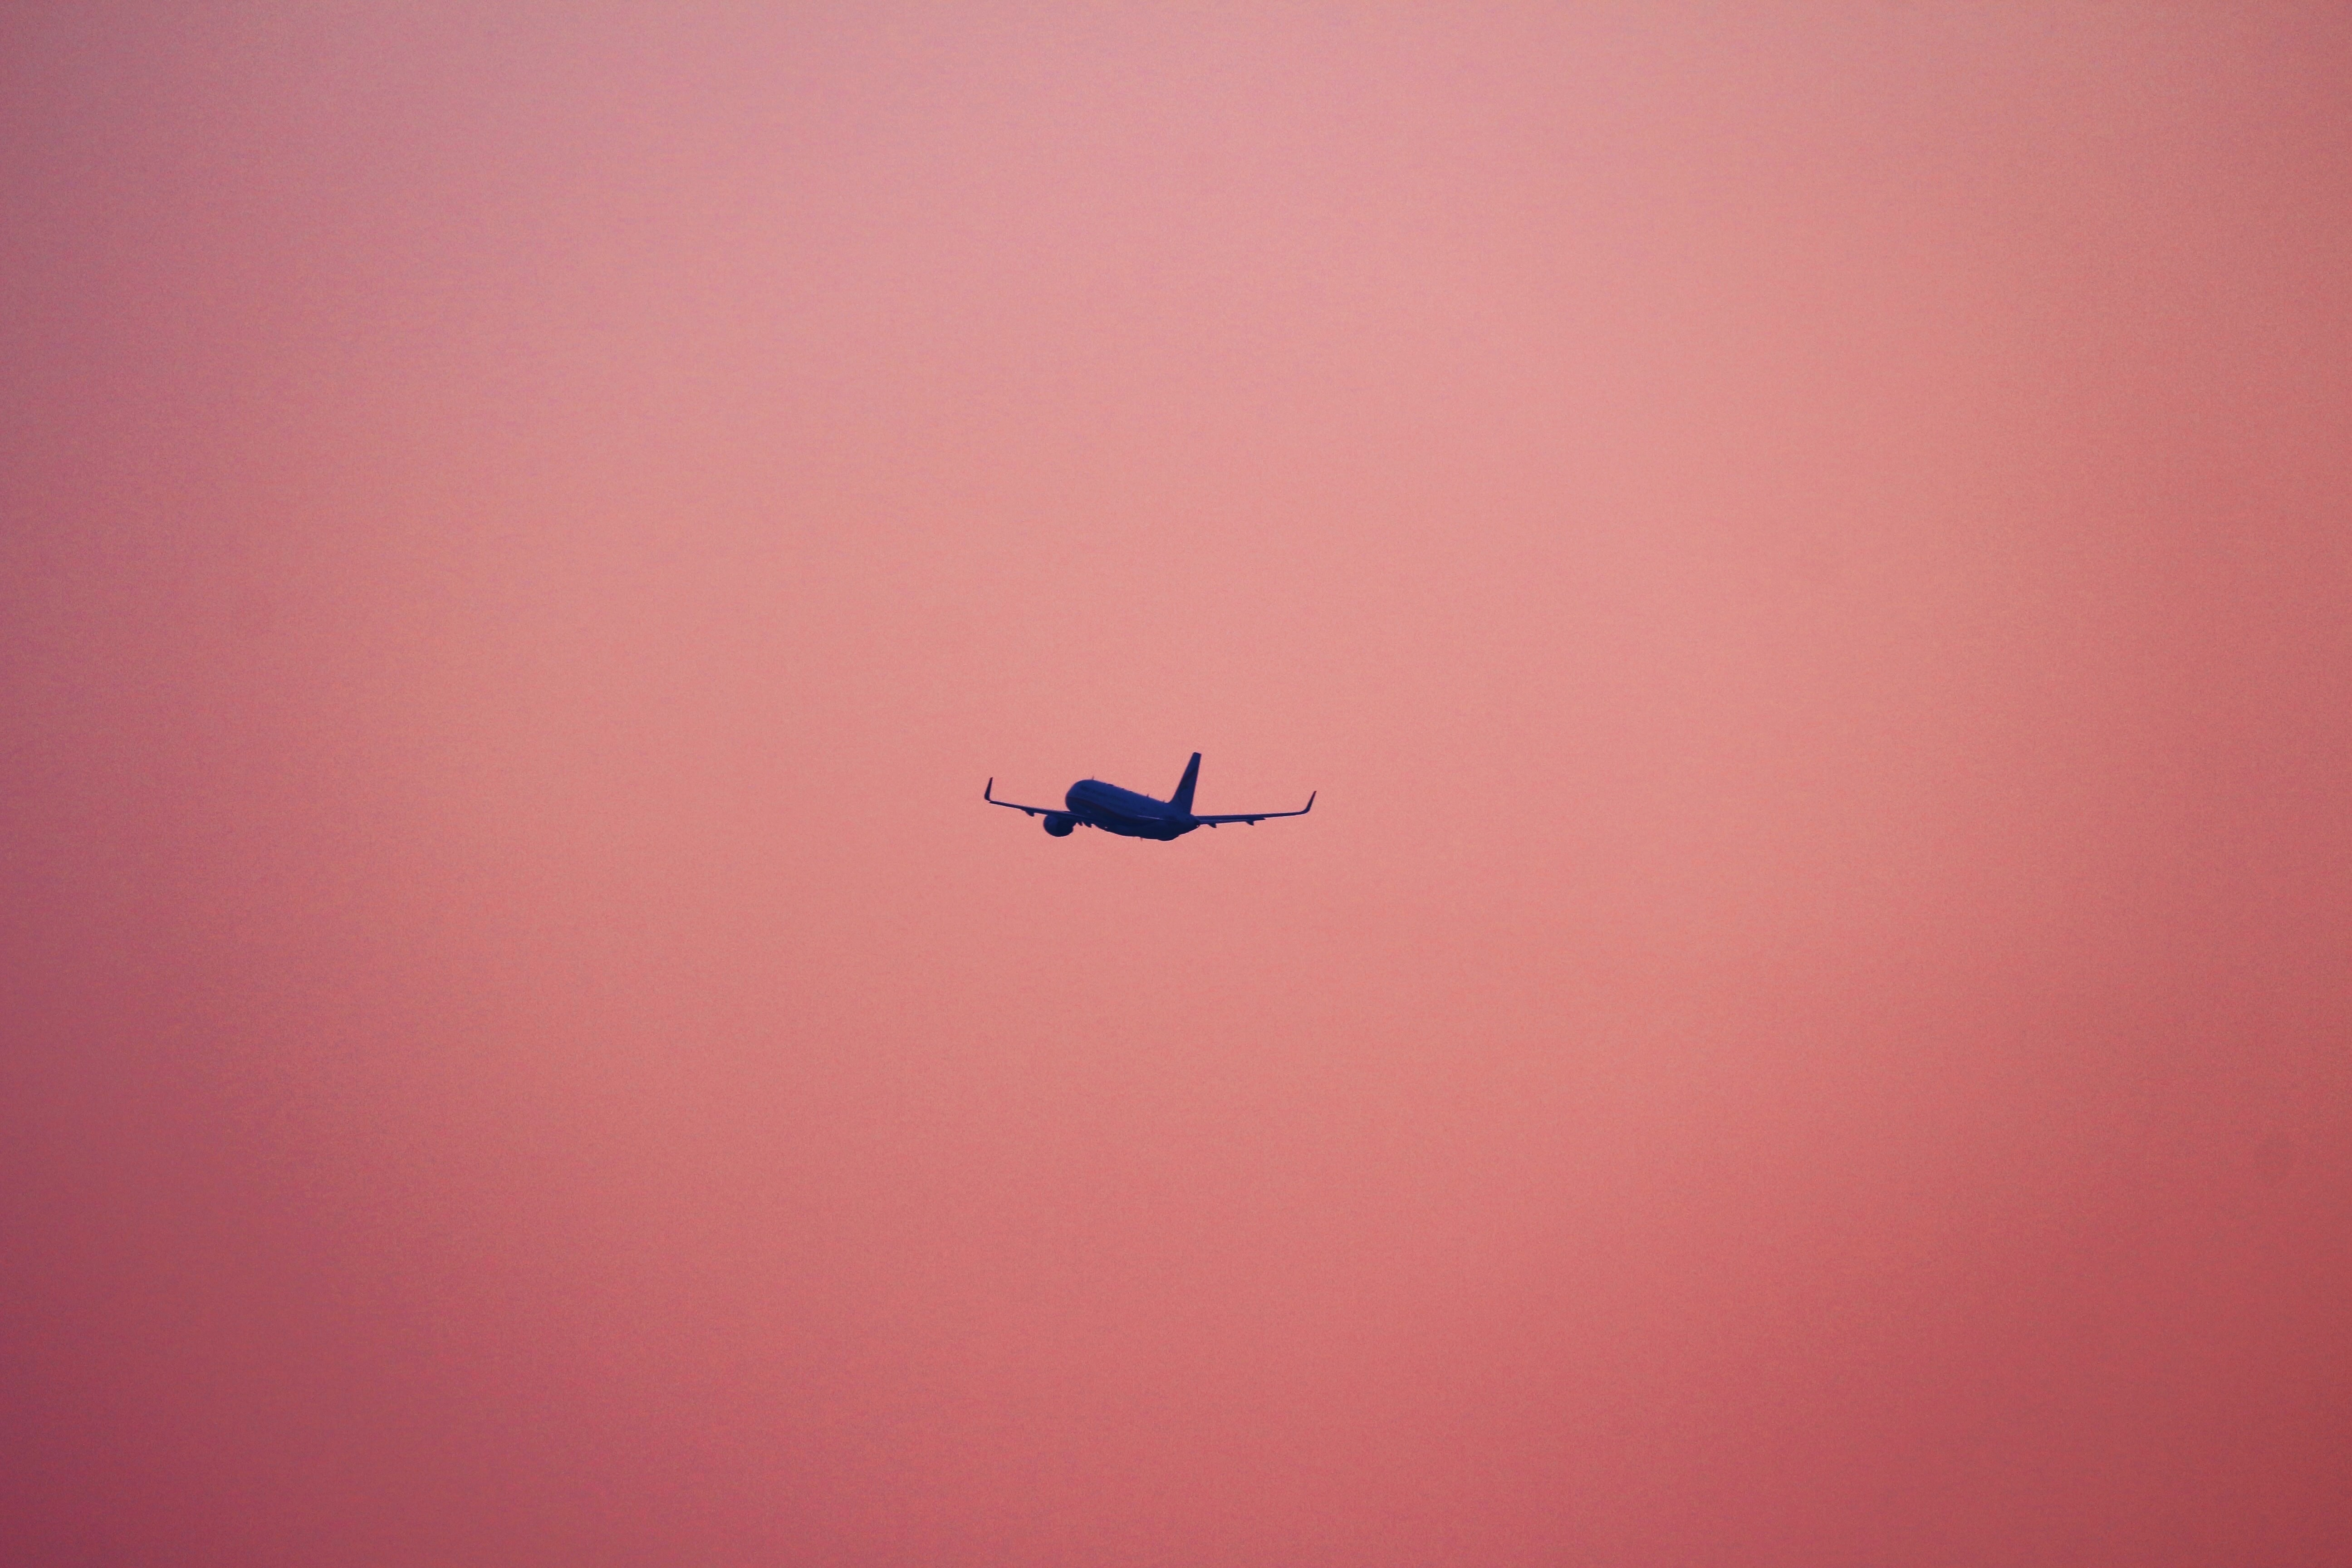 plane flying on pink background